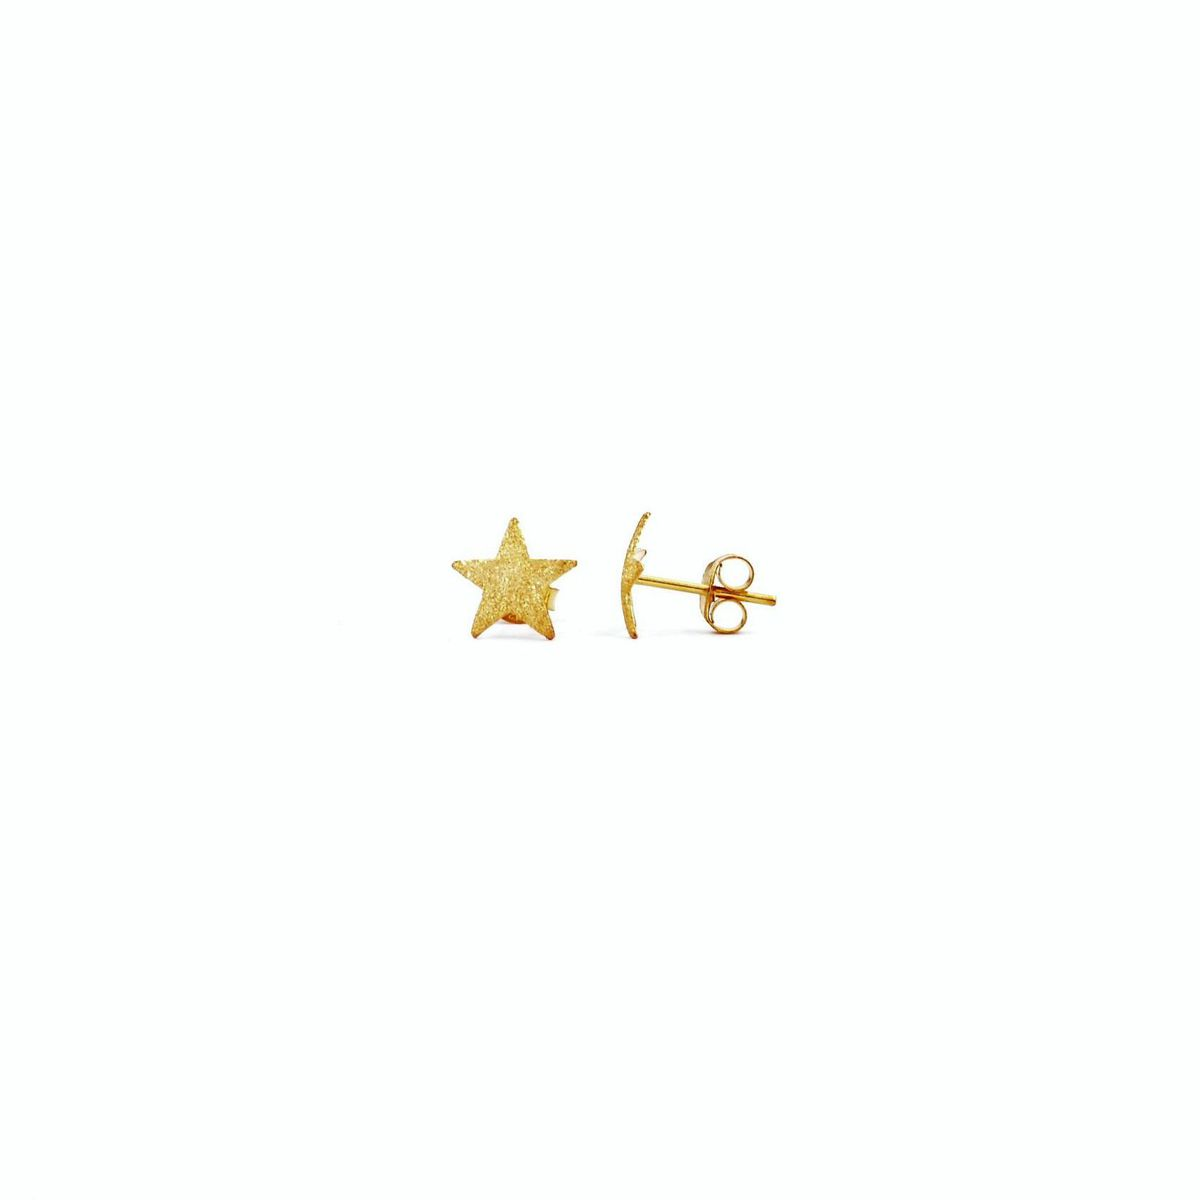 Star Earrings 1 Gold BRASS Gioielli